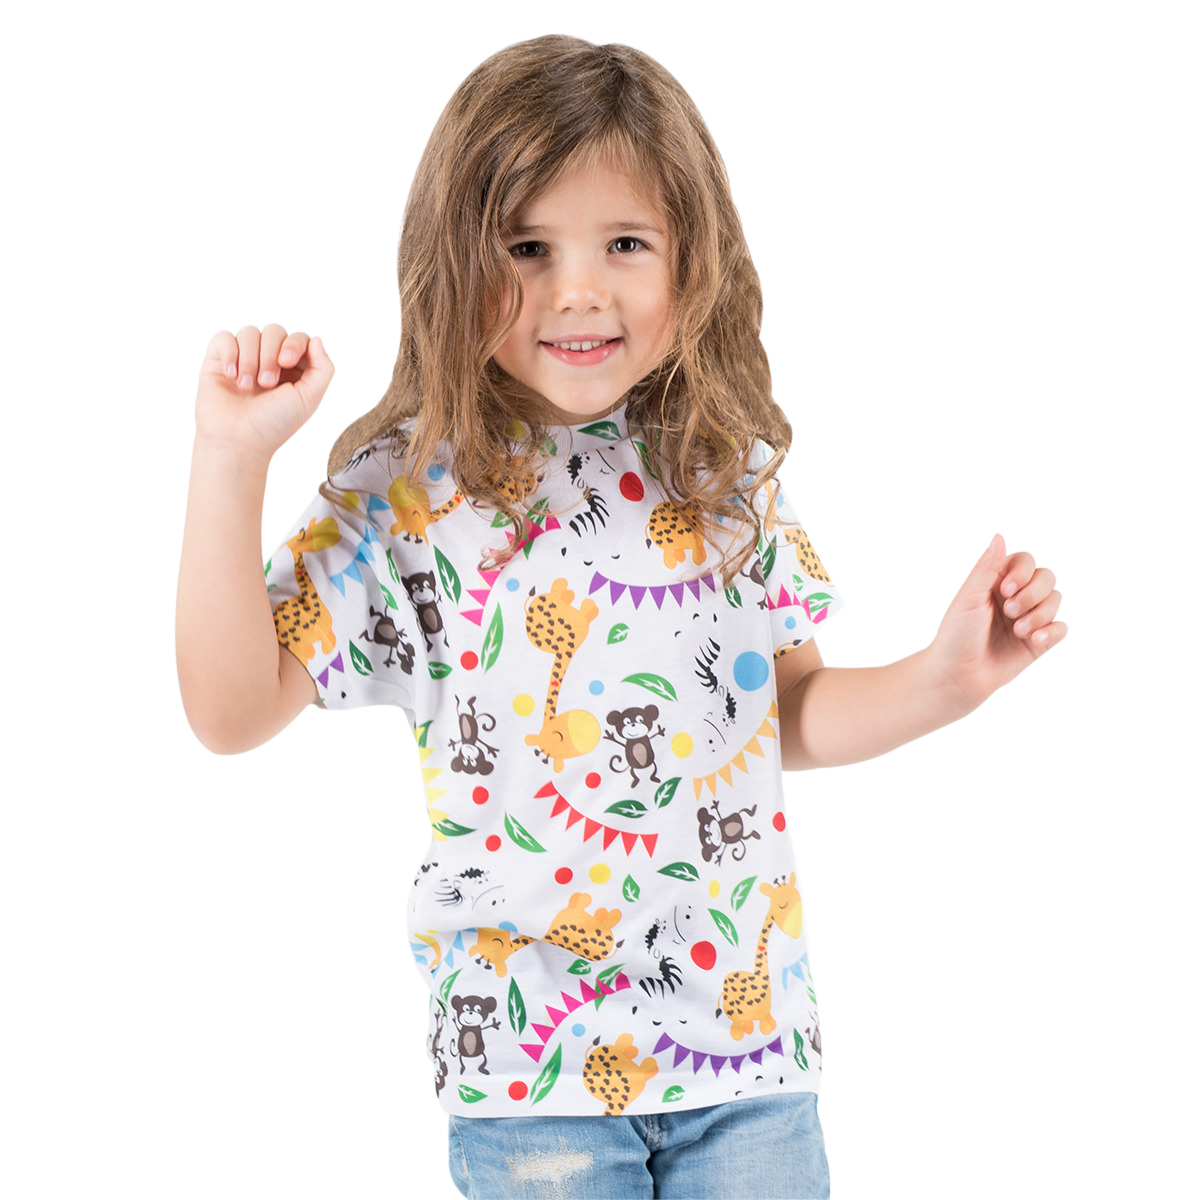 A cute blonde girl wearing a white shirt with animal print design